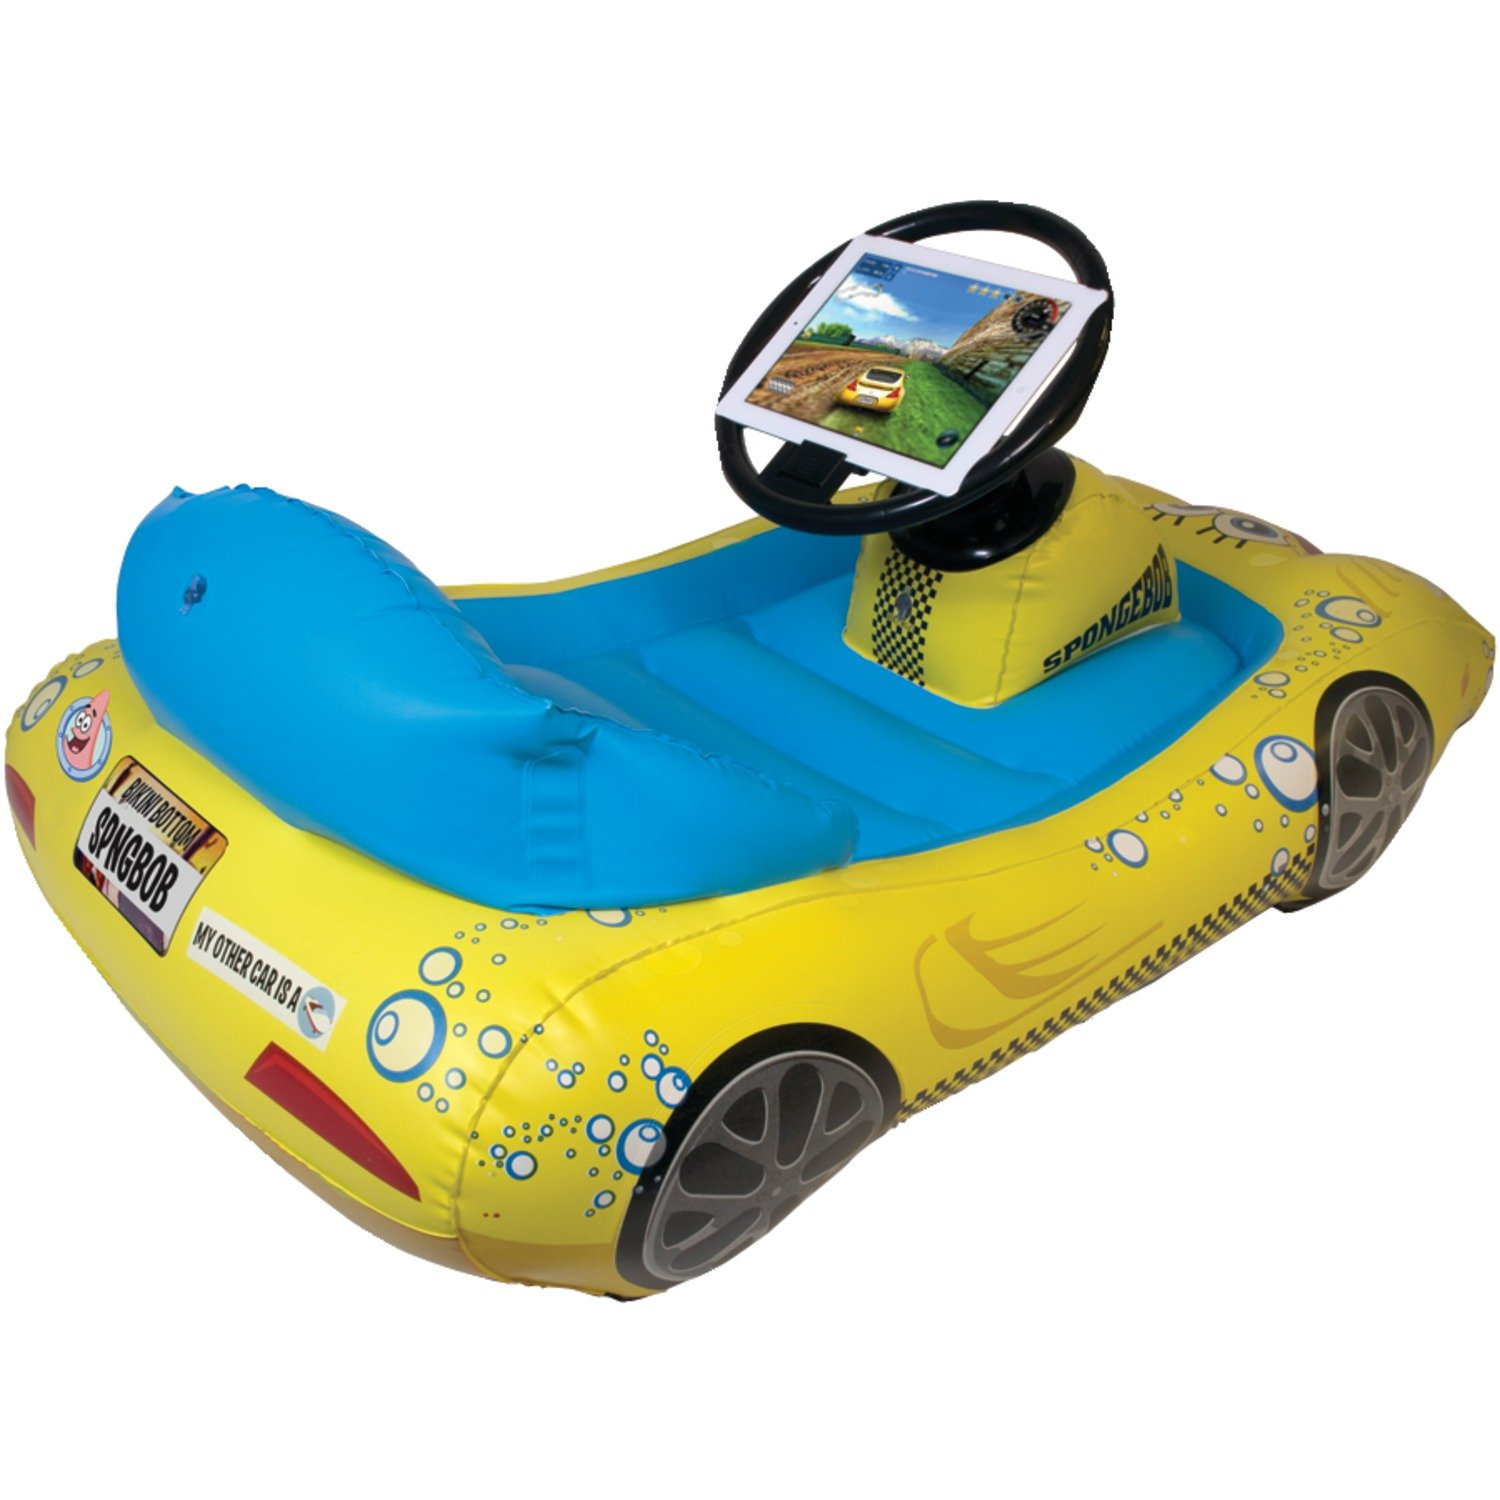 Amazon.com: SpongeBob SquarePants Inflatable Sports Car for iPad ...